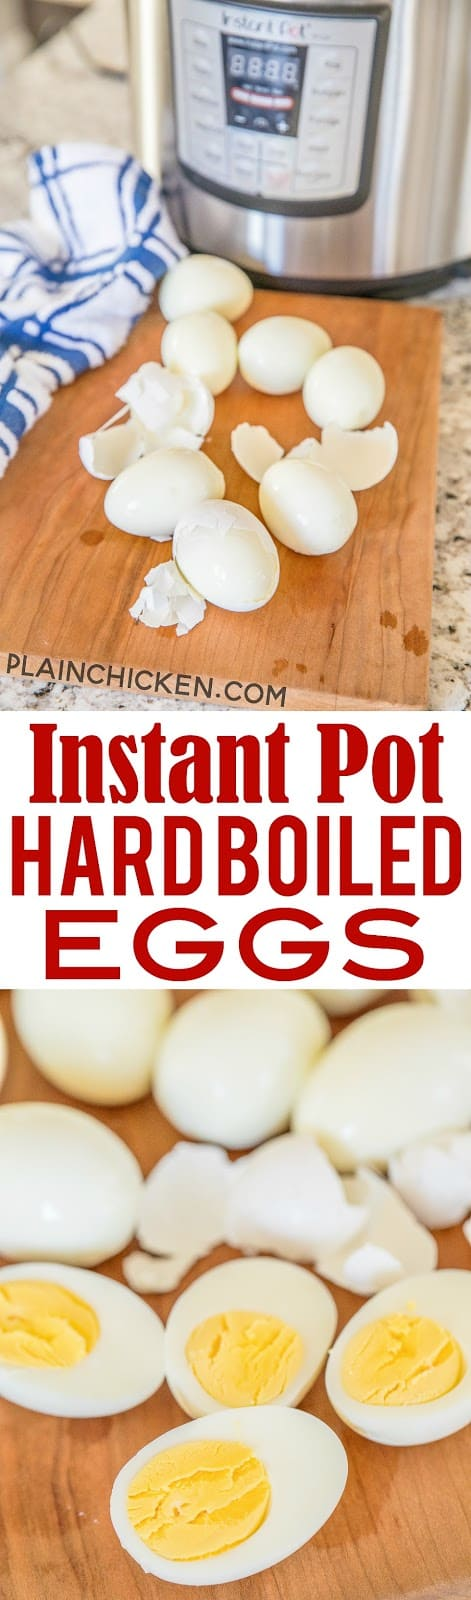 Instant Pot Hard Boiled Eggs - perfect eggs every single time! The shells come right off! No more dimpled eggs!! Great for all your Easter egg dying. #InstantPot #eggs #hardboiledeggs